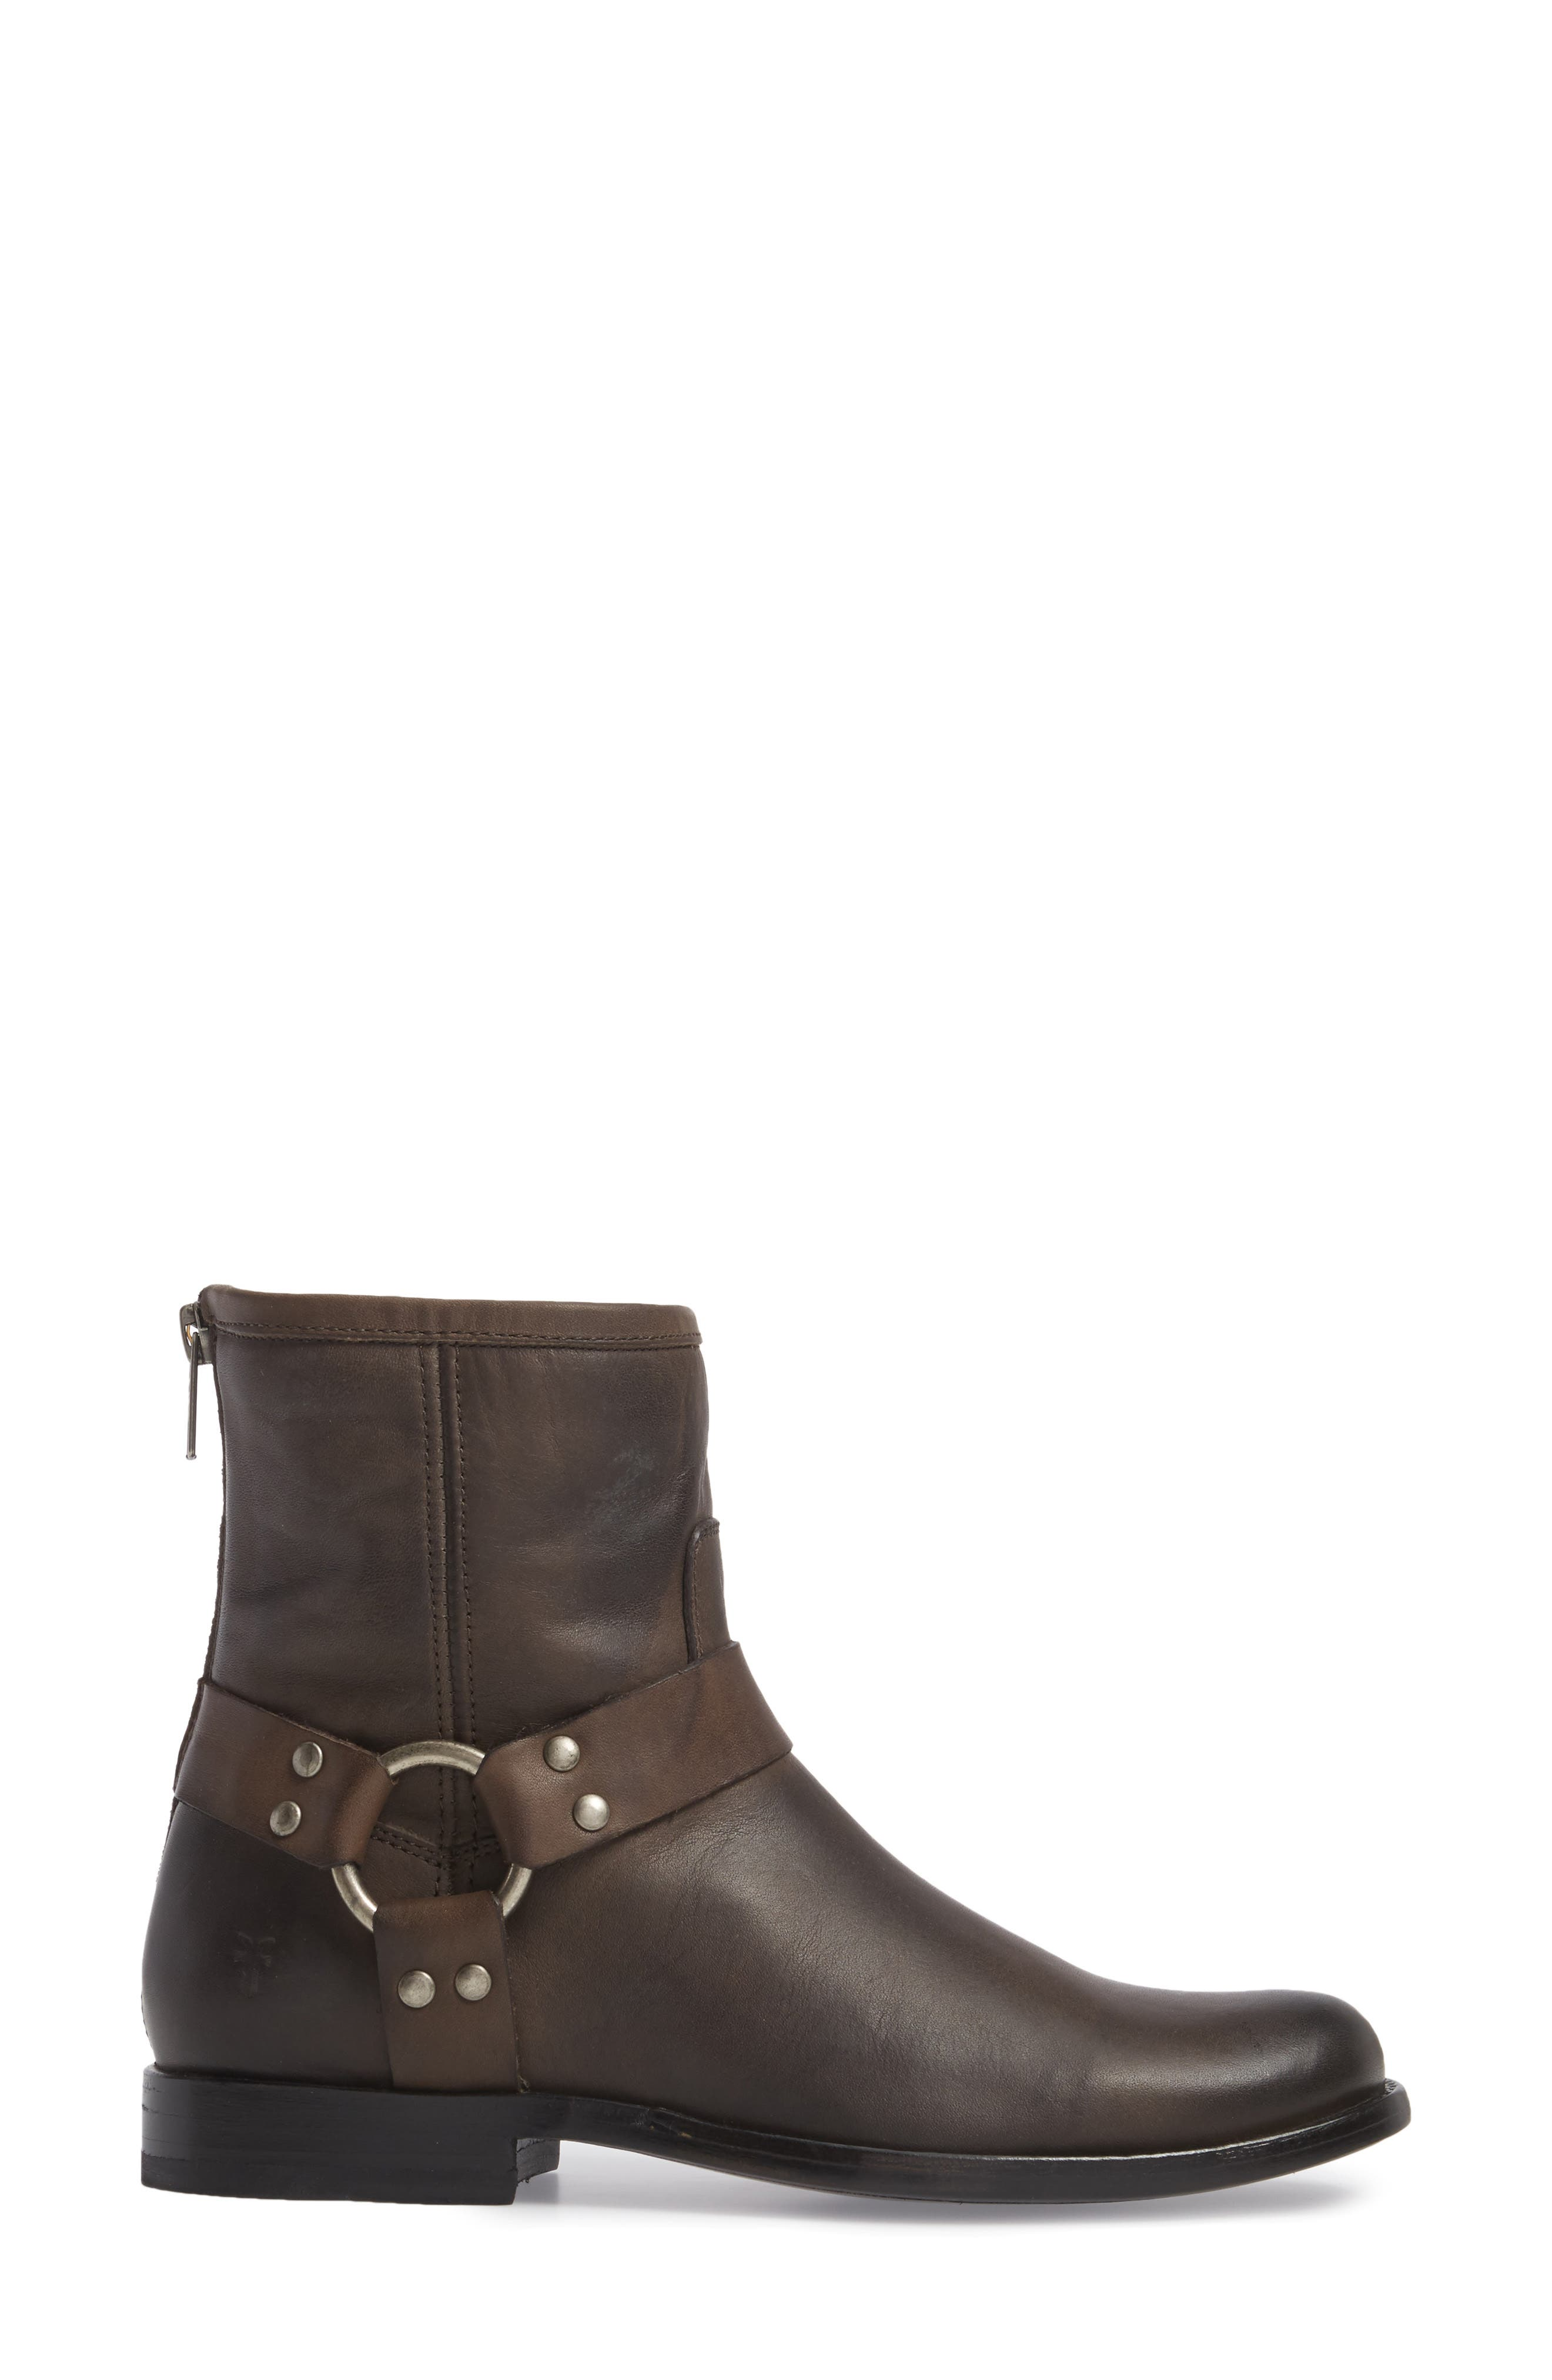 Phillip Harness Boot,                             Alternate thumbnail 3, color,                             Smoke Leather